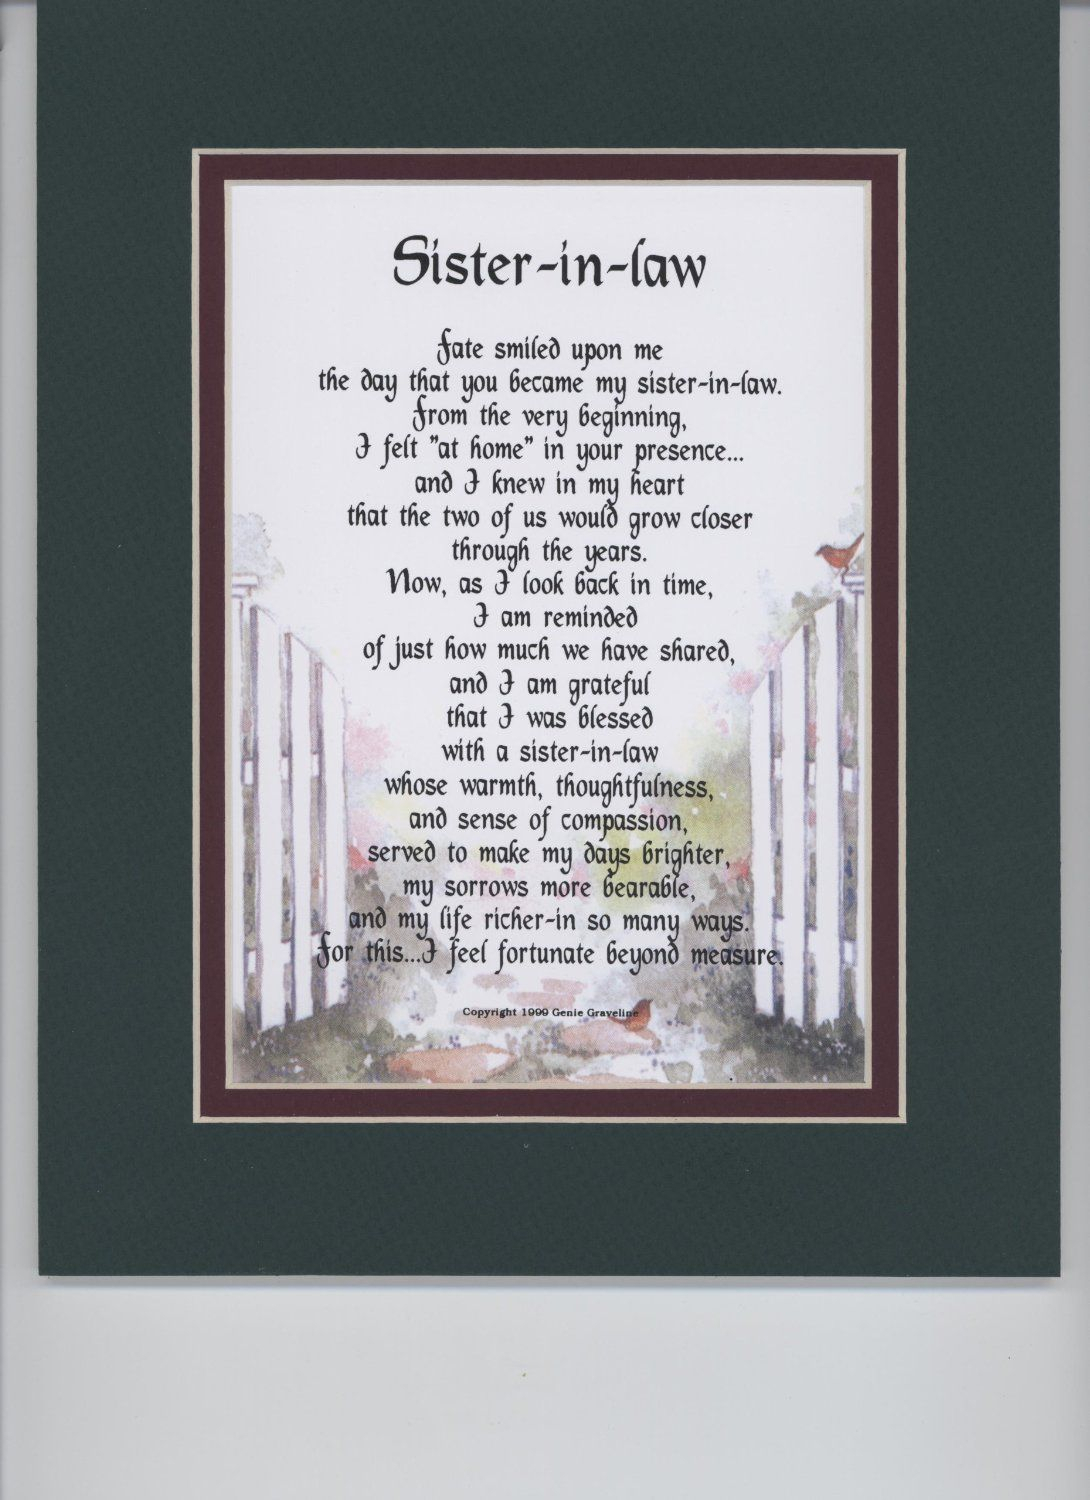 10 Cute Gift Ideas Sister In Law 5 meaningful gift ideas for sister in law for under 50 food 2020